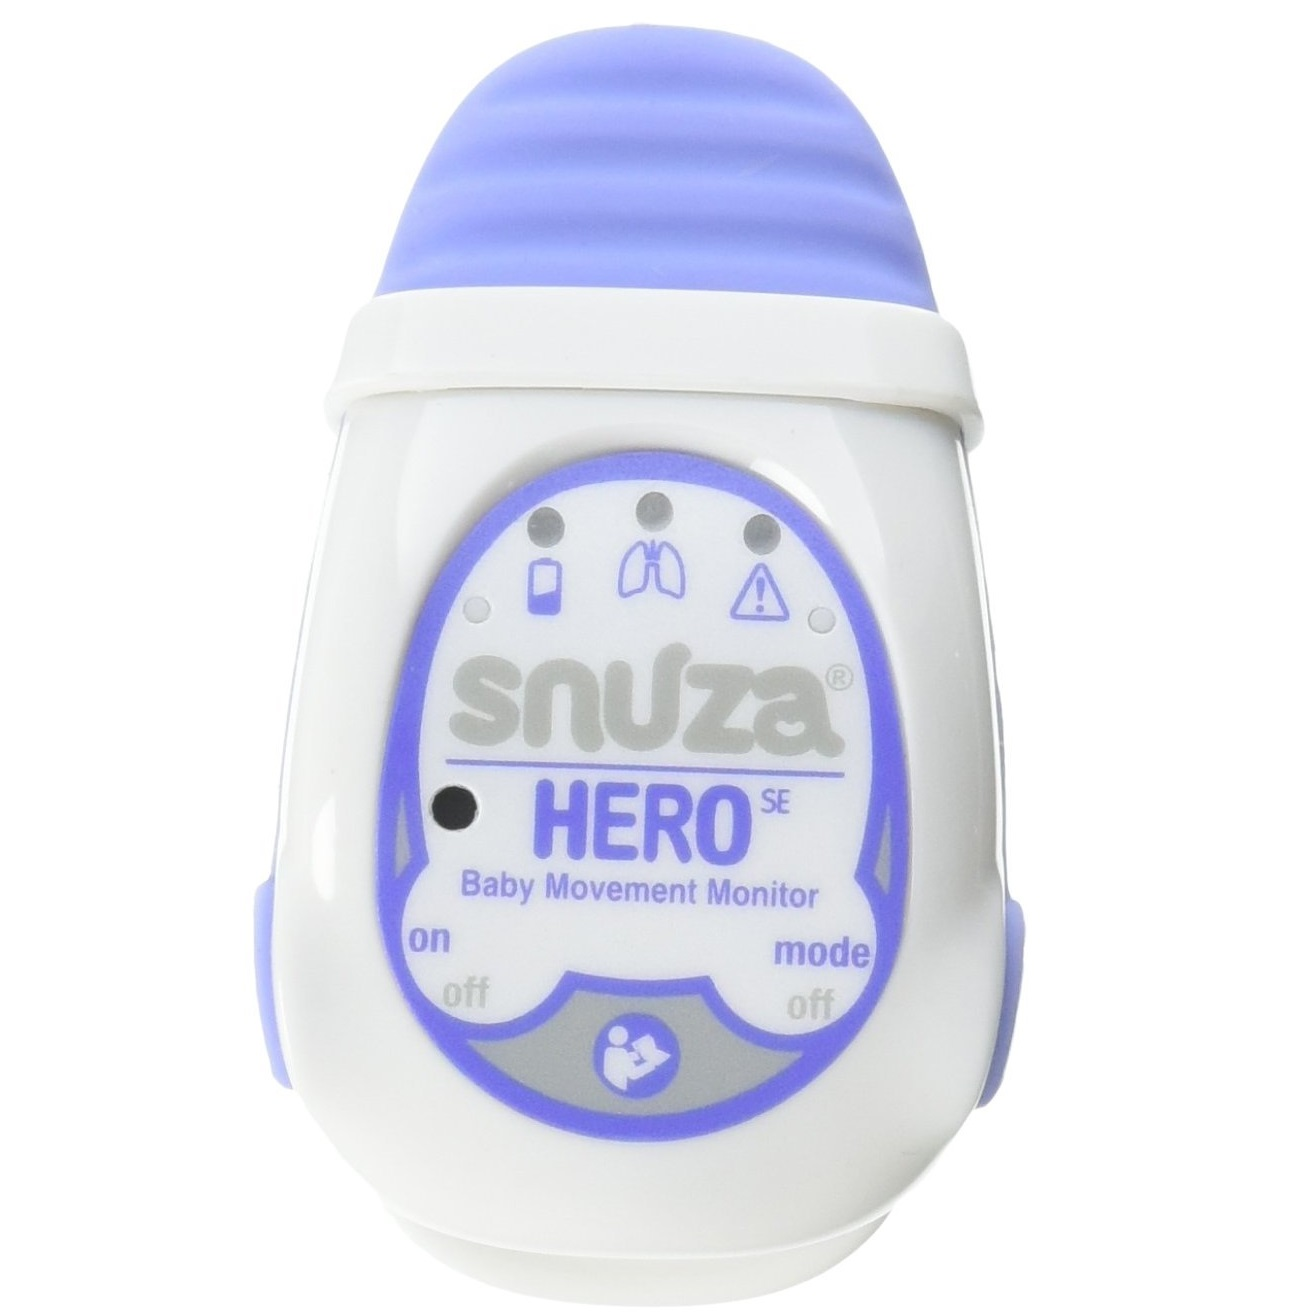 Snuza Hero SE Movement Monitor